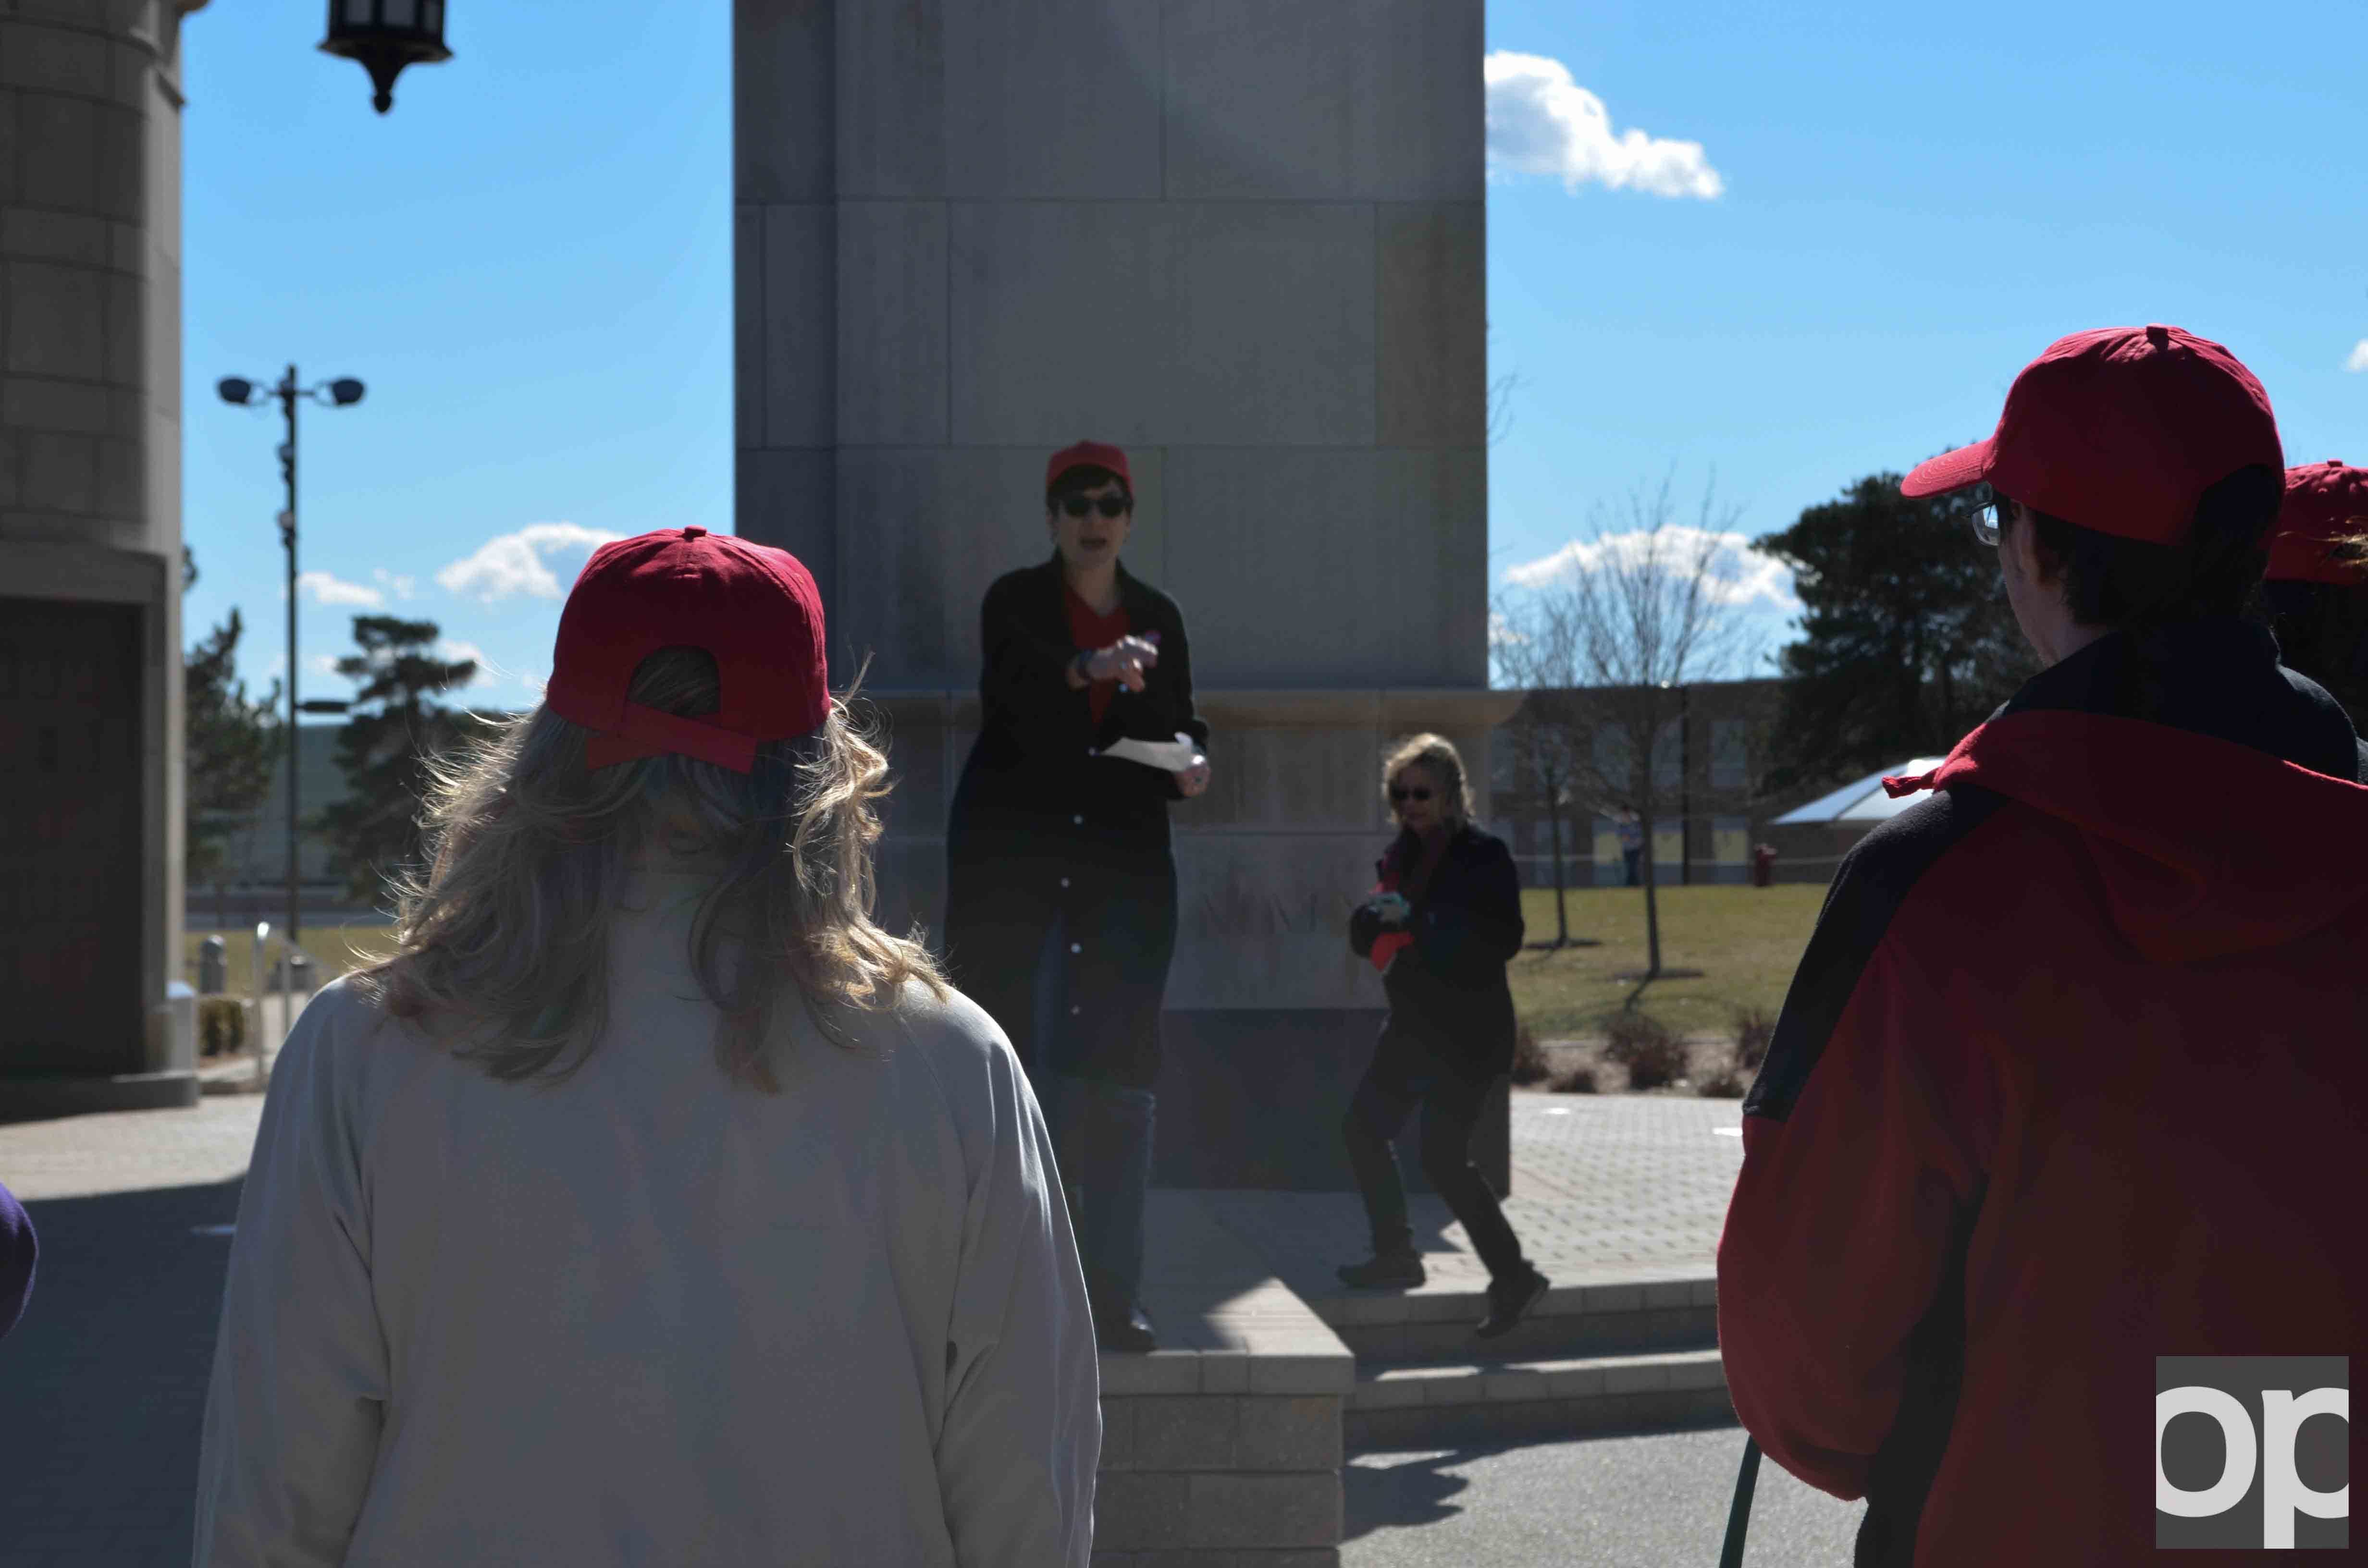 Students, faculty and staff come together wearing red